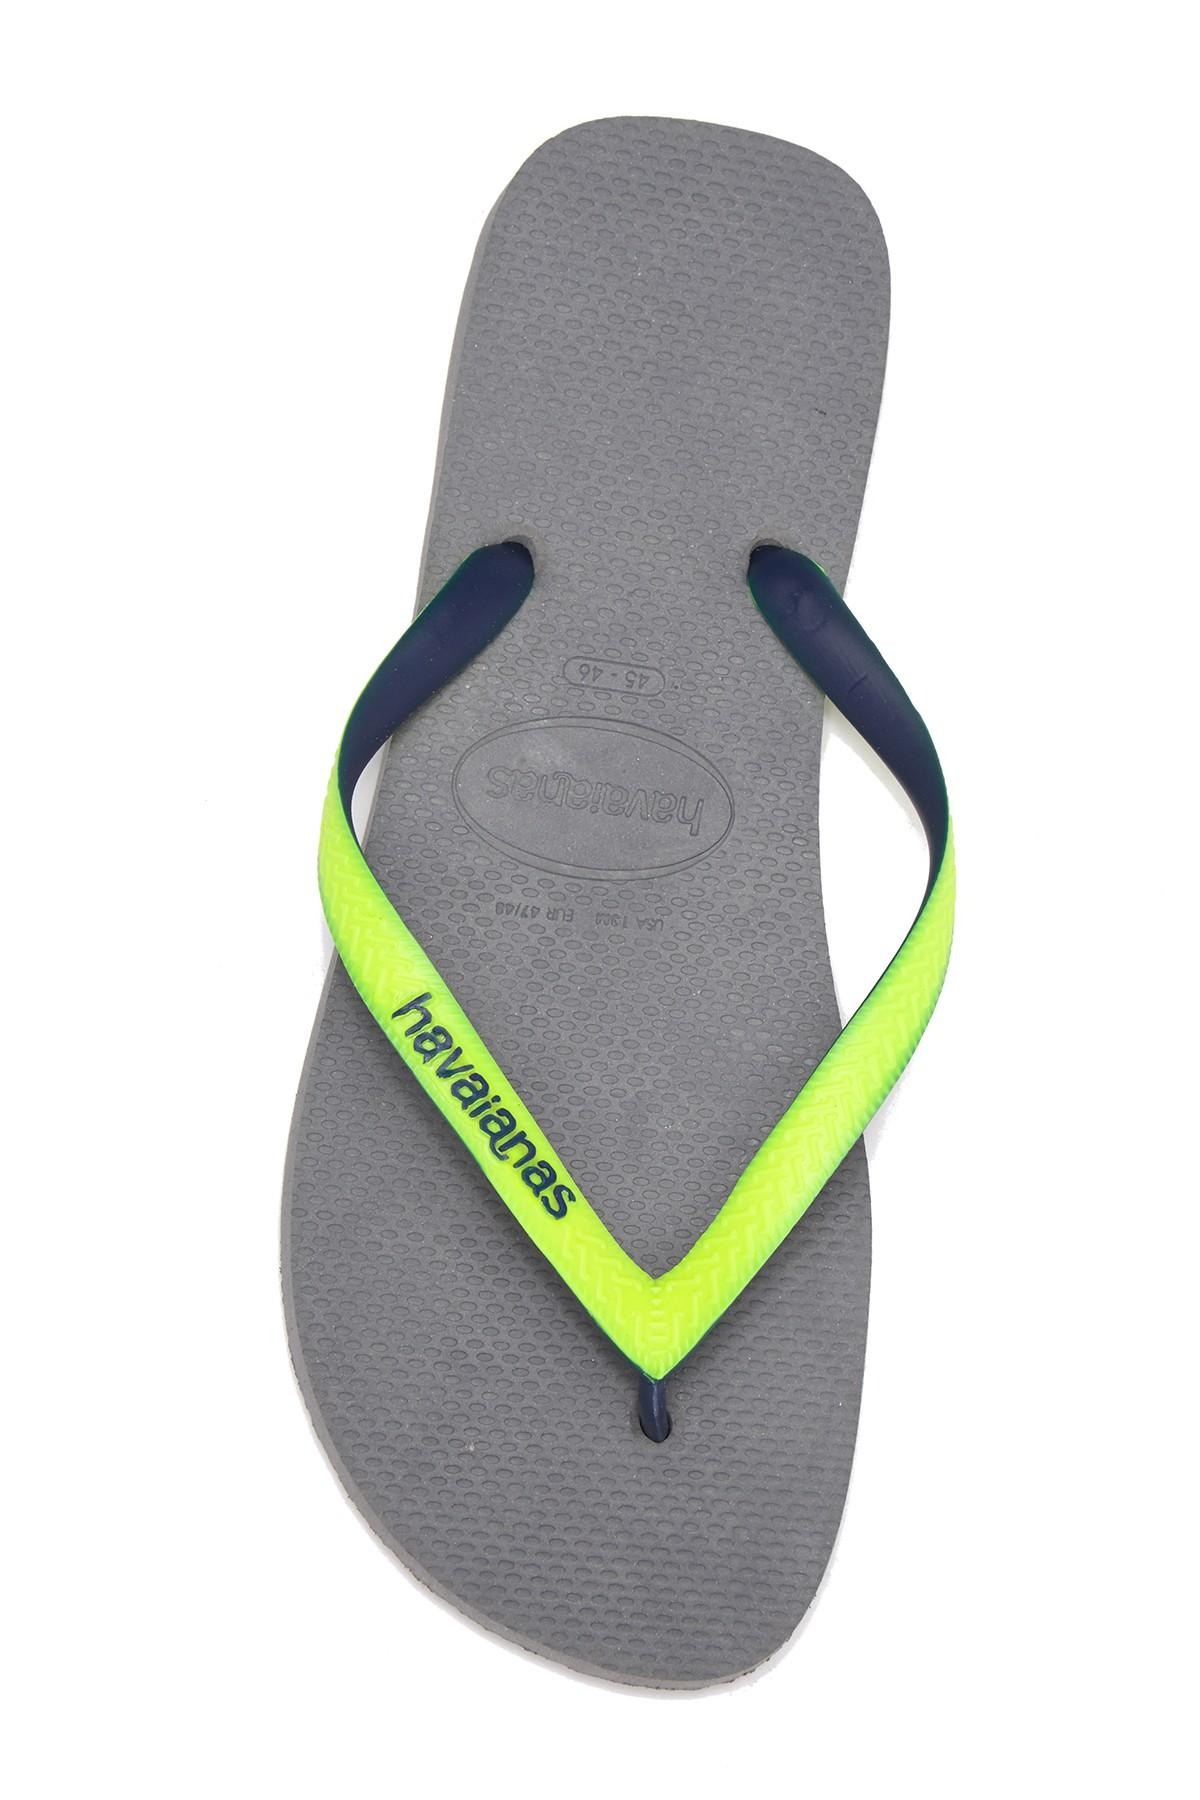 719b2e701 Havaianas - Gray  top Mix  Flip Flop (men) for Men - Lyst. View fullscreen